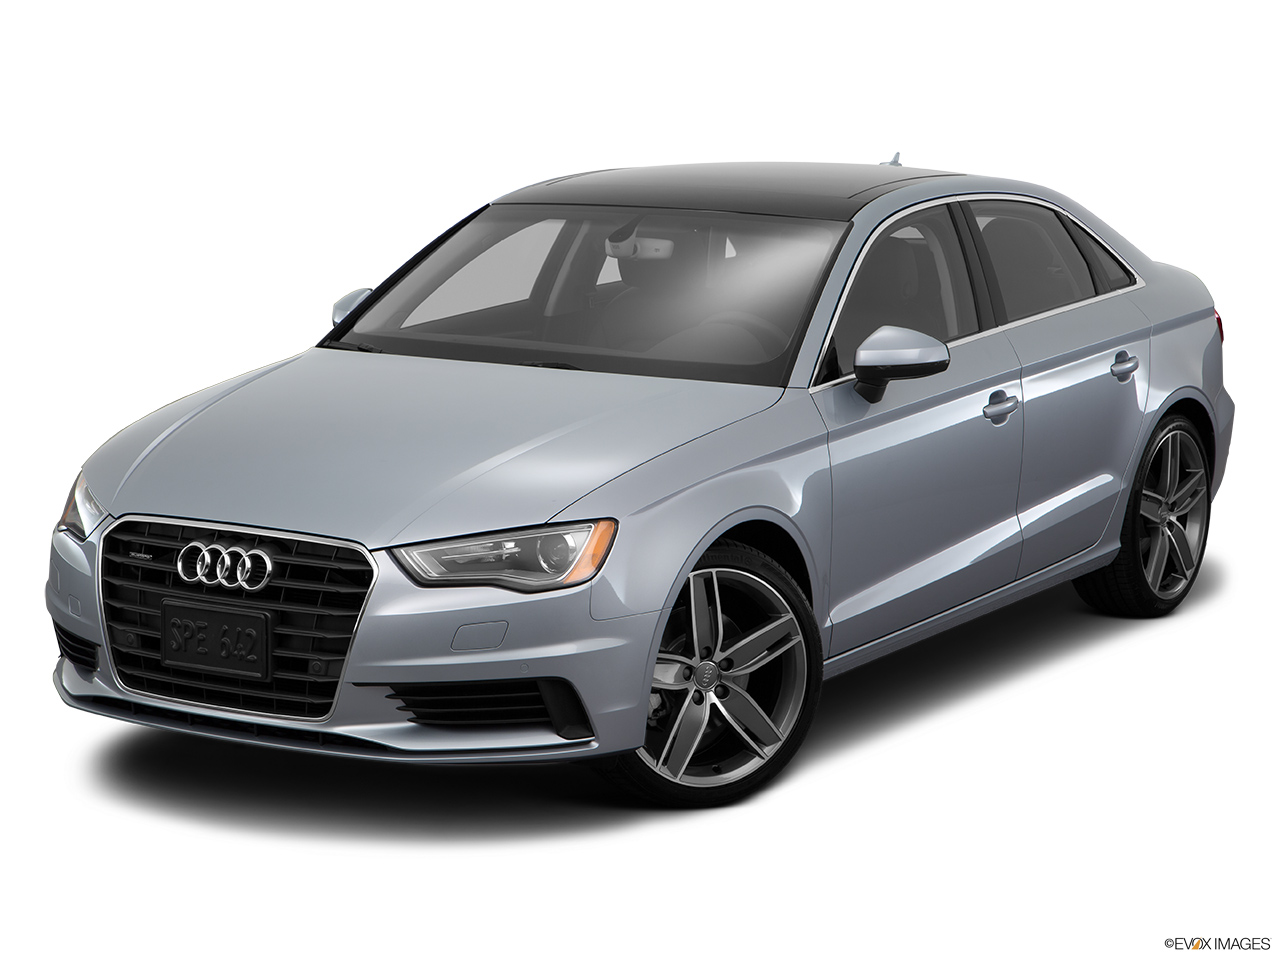 audi a3 sedan 2016 ambition 1 8 quattro 180 hp in saudi arabia new car prices specs reviews. Black Bedroom Furniture Sets. Home Design Ideas